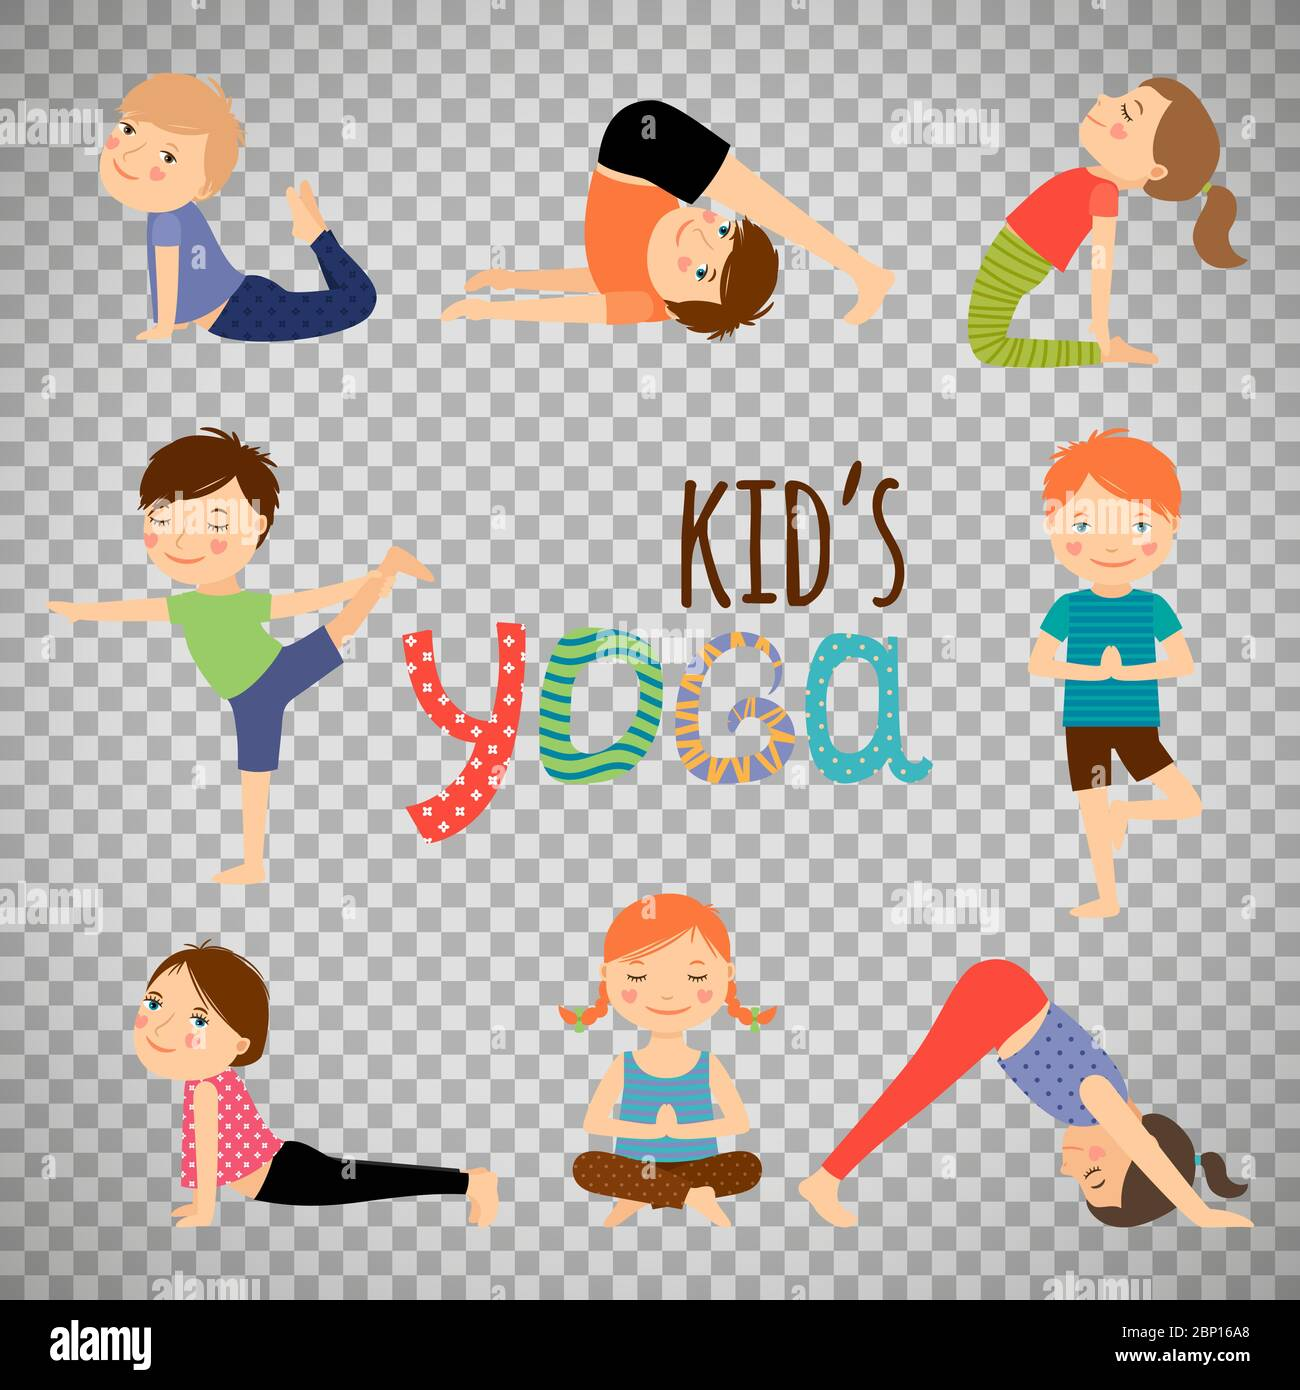 Yoga Kids Set Gymnastics For Children And Healthy Lifestyle Isolated On Transparent Background Vector Illustration Stock Vector Image Art Alamy